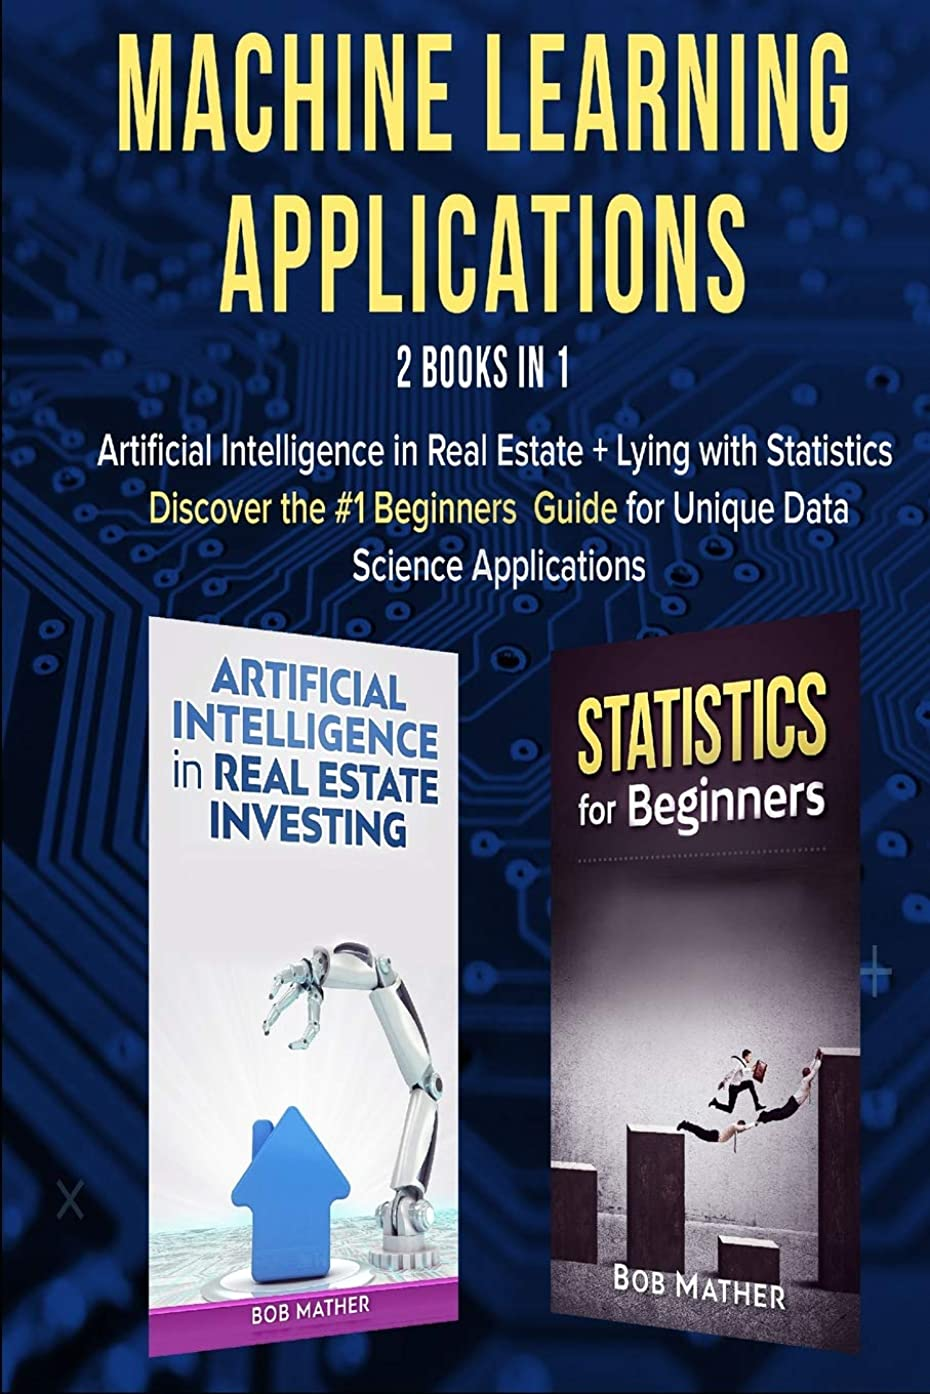 Machine Learning Applications 2 Books in 1: Artificial Intelligence in Real Estate + Lying with Statistics Discover the #1 Beginners Guide to Unique Data Science Applications